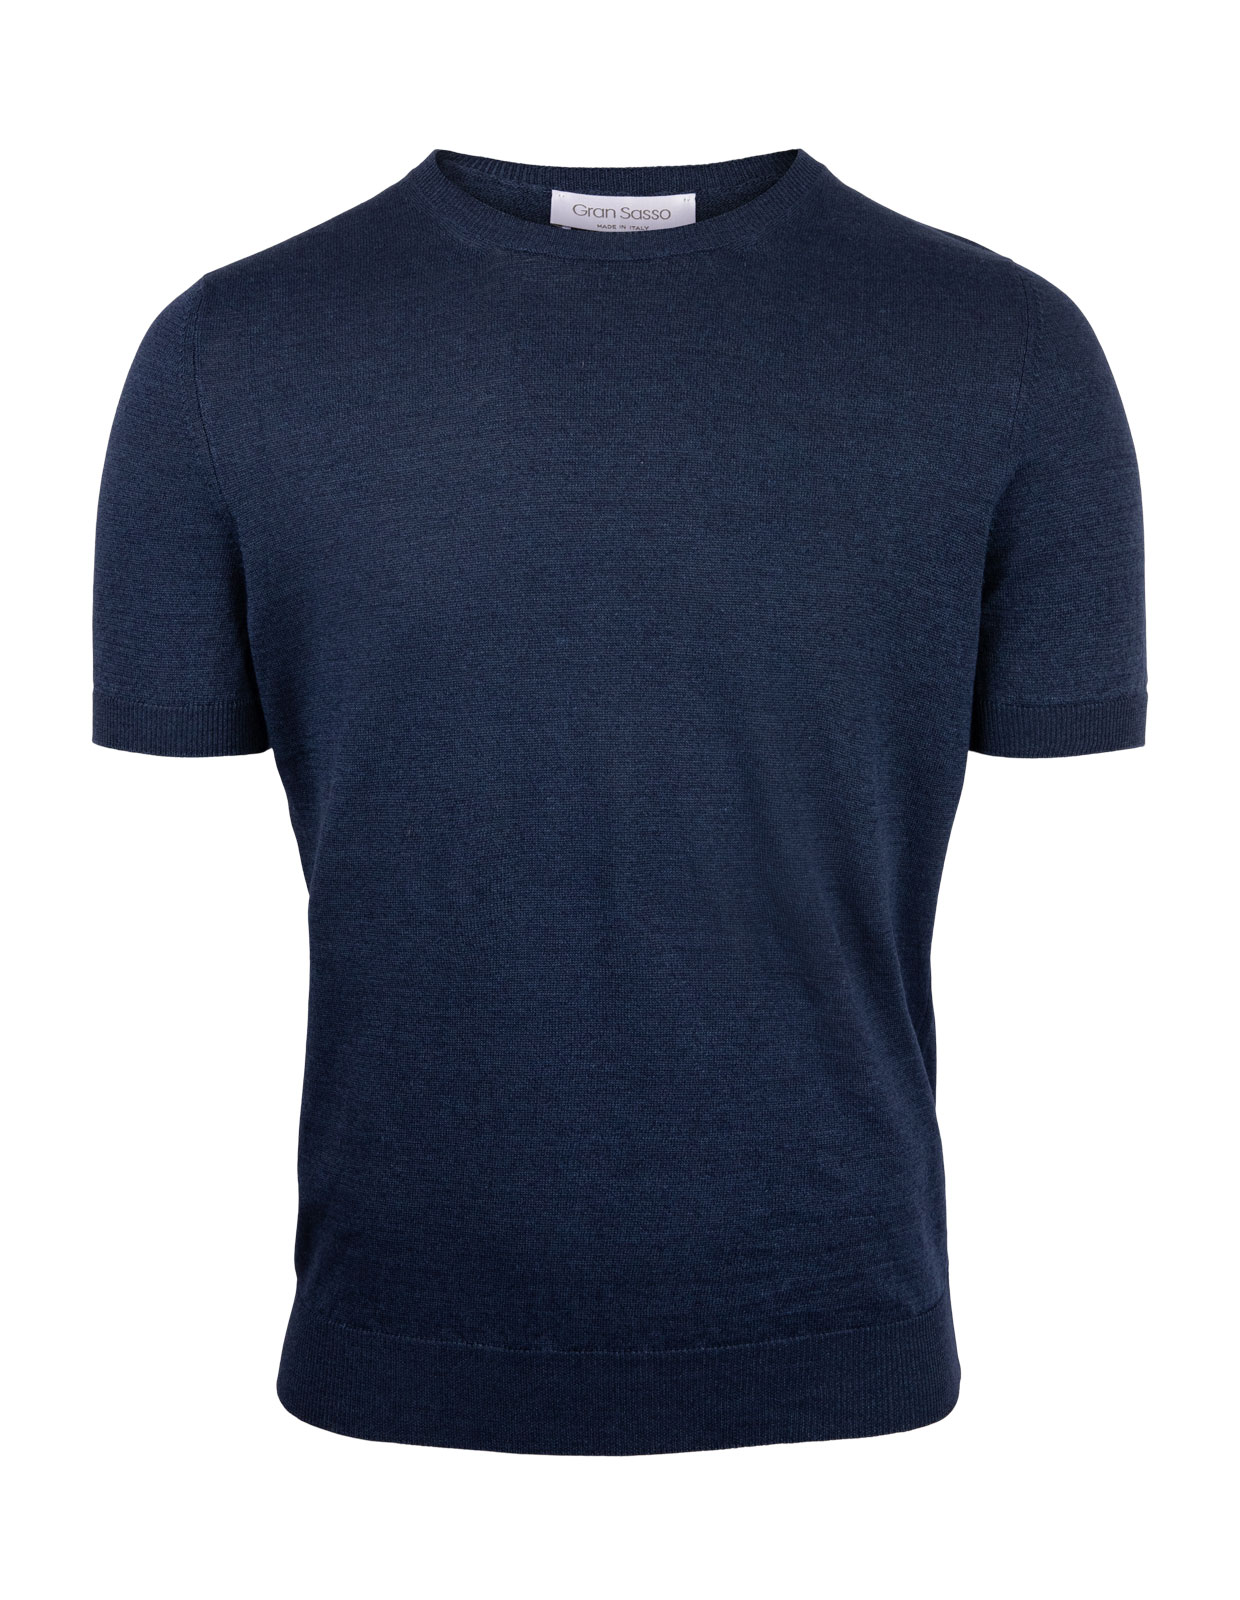 Luxury T-shirt Linen Cotton Crew Neck Navy